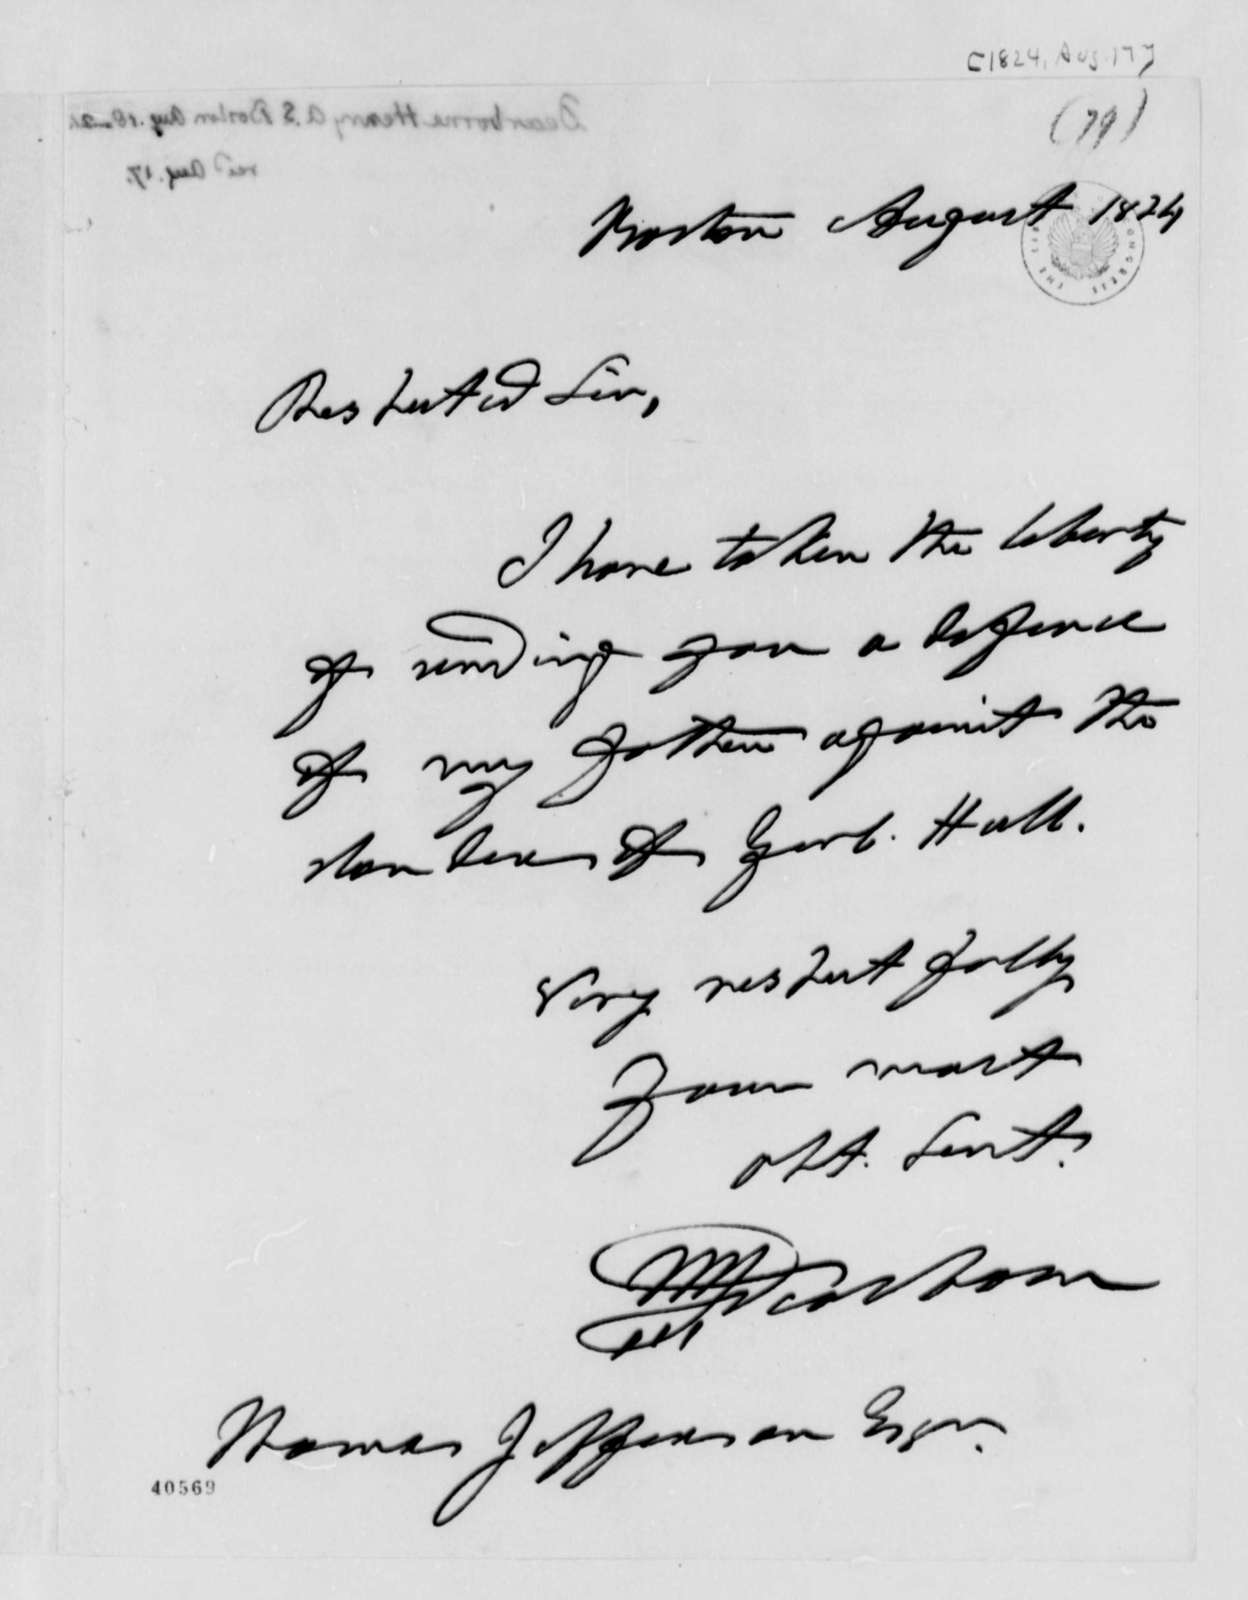 Henry A. S. Dearborn to Thomas Jefferson, August 17, 1824